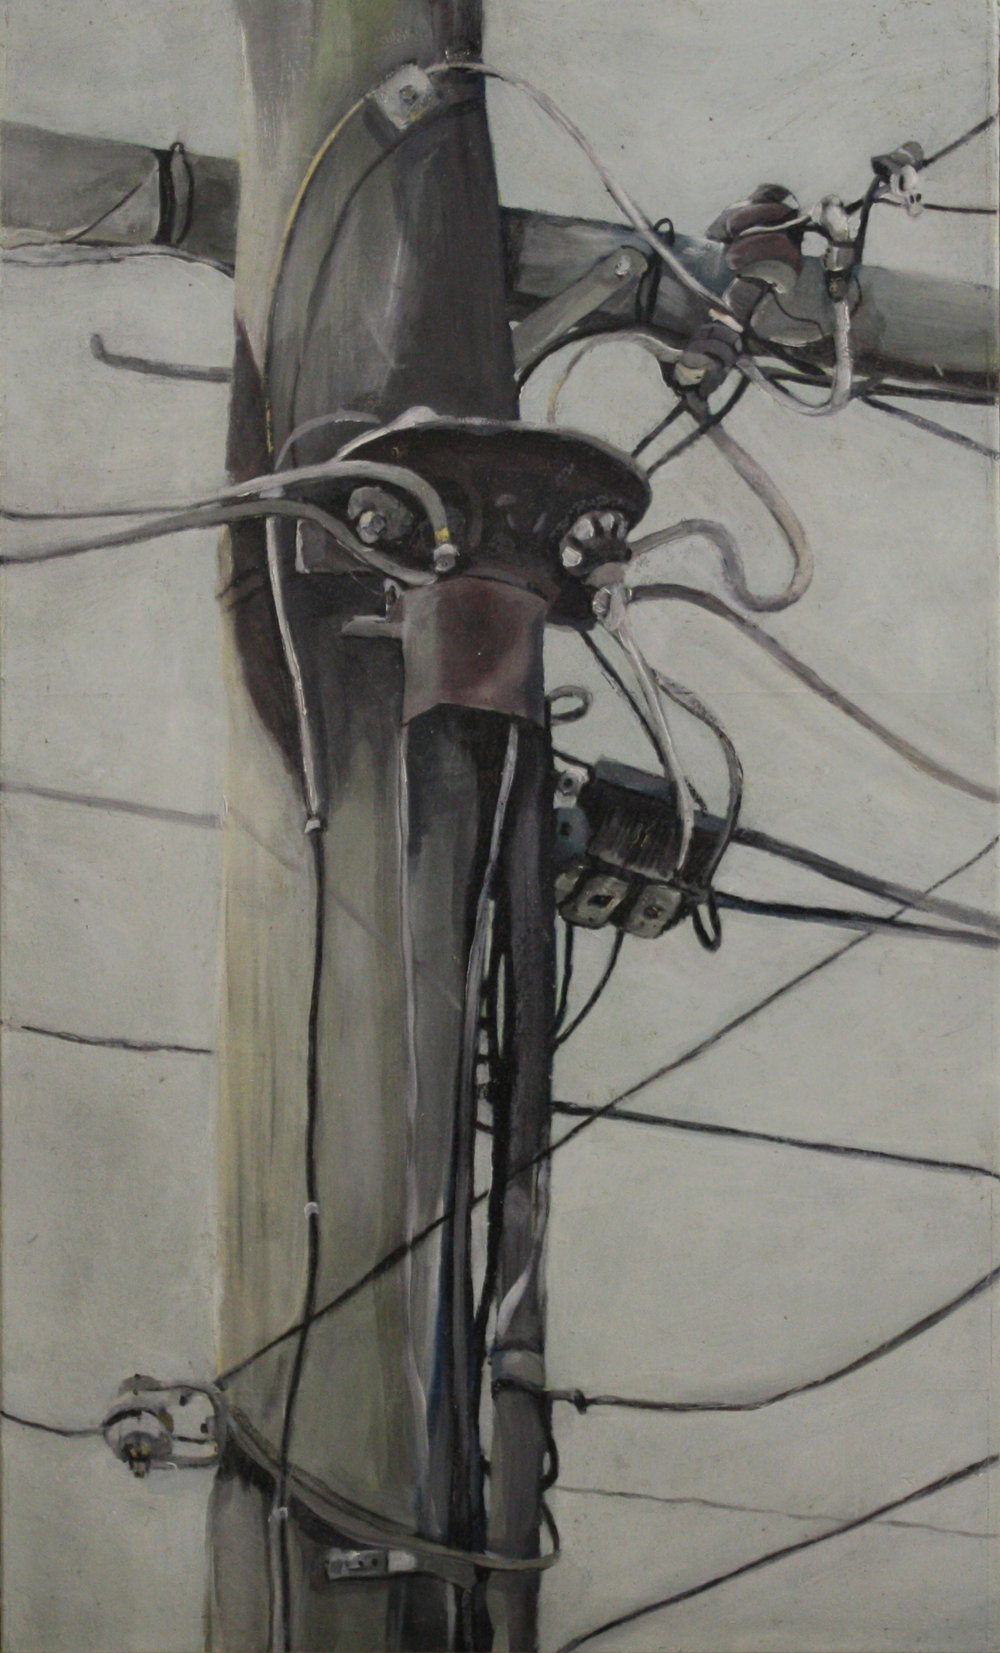 Components: 24712   2011, oil on canvas  50 x 76 cm